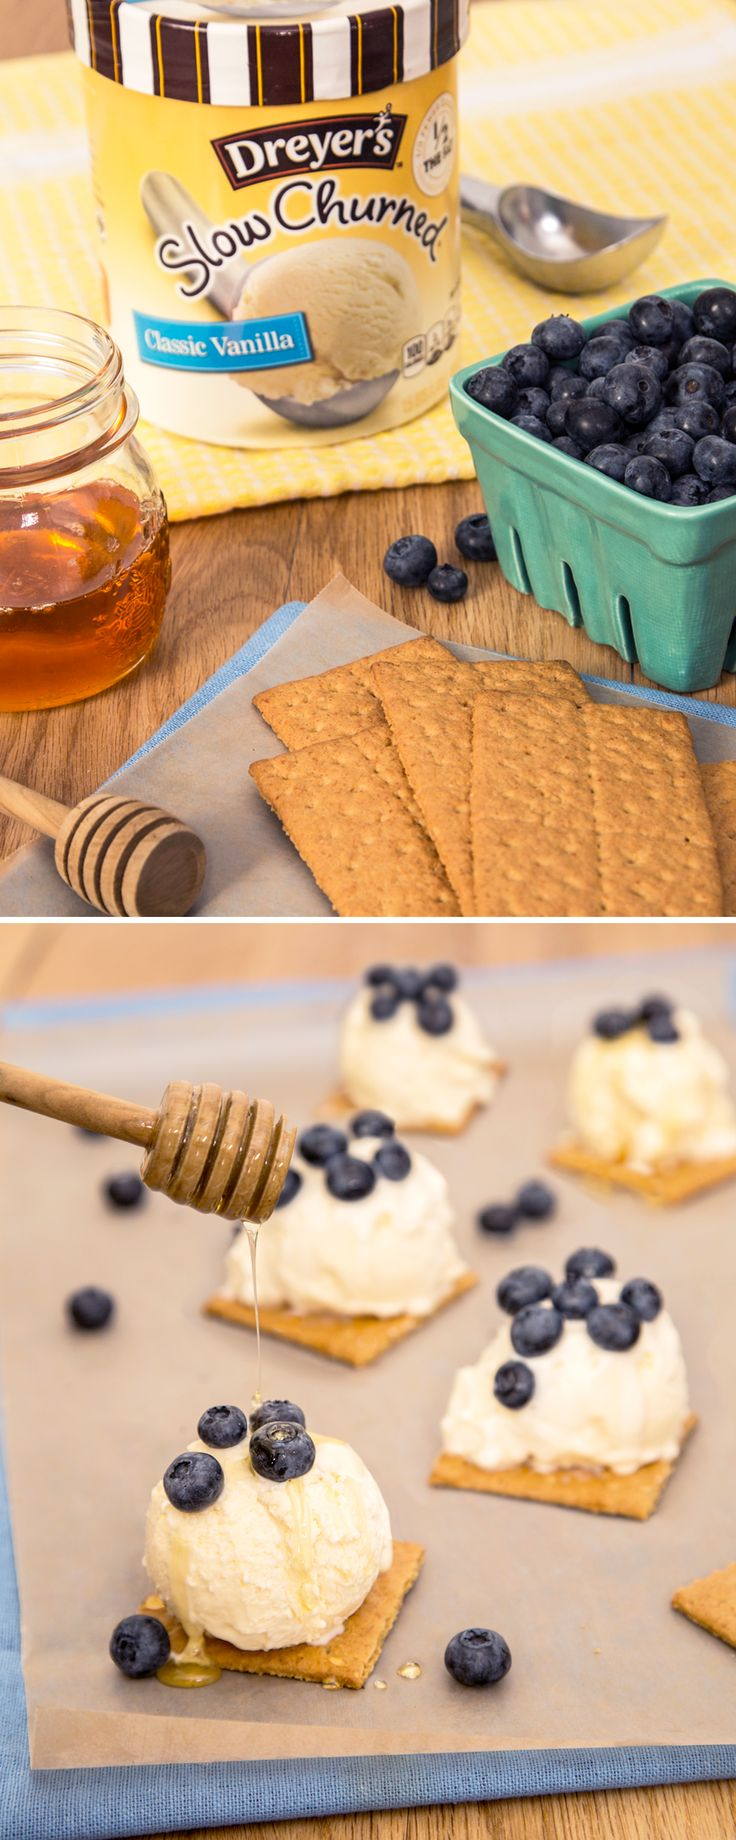 Dreyer's Ice Cream Honey Crisps: Put a spin on snack time with this easy, no-bake recipe! Simply place a scoop of Dreyer's Slow Churned Classic Vanilla Ice Cream on top of crispy graham crackers! Your kids will enjoy topping the treat with fresh blueberries and honey drizzle.